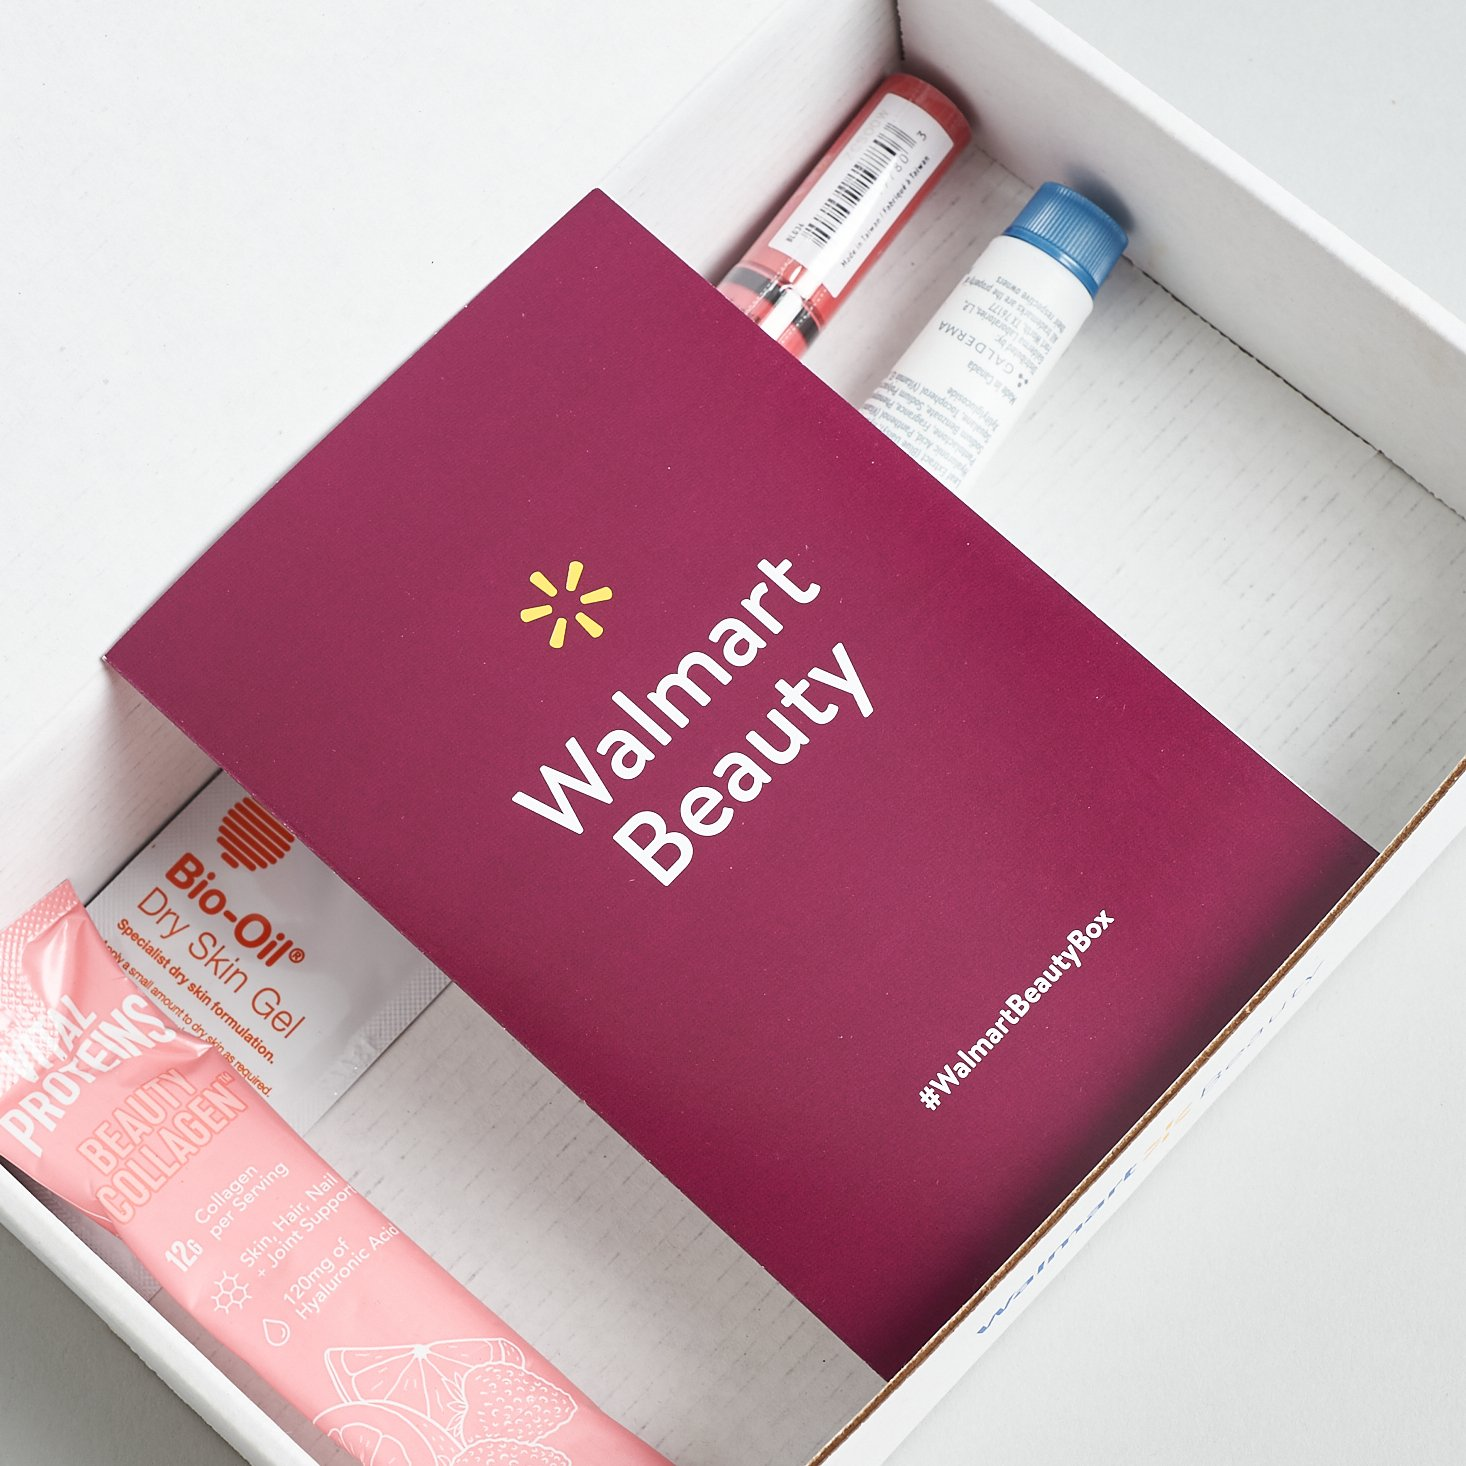 Walmart Beauty Spring 2021 Box to Include Price Increase!